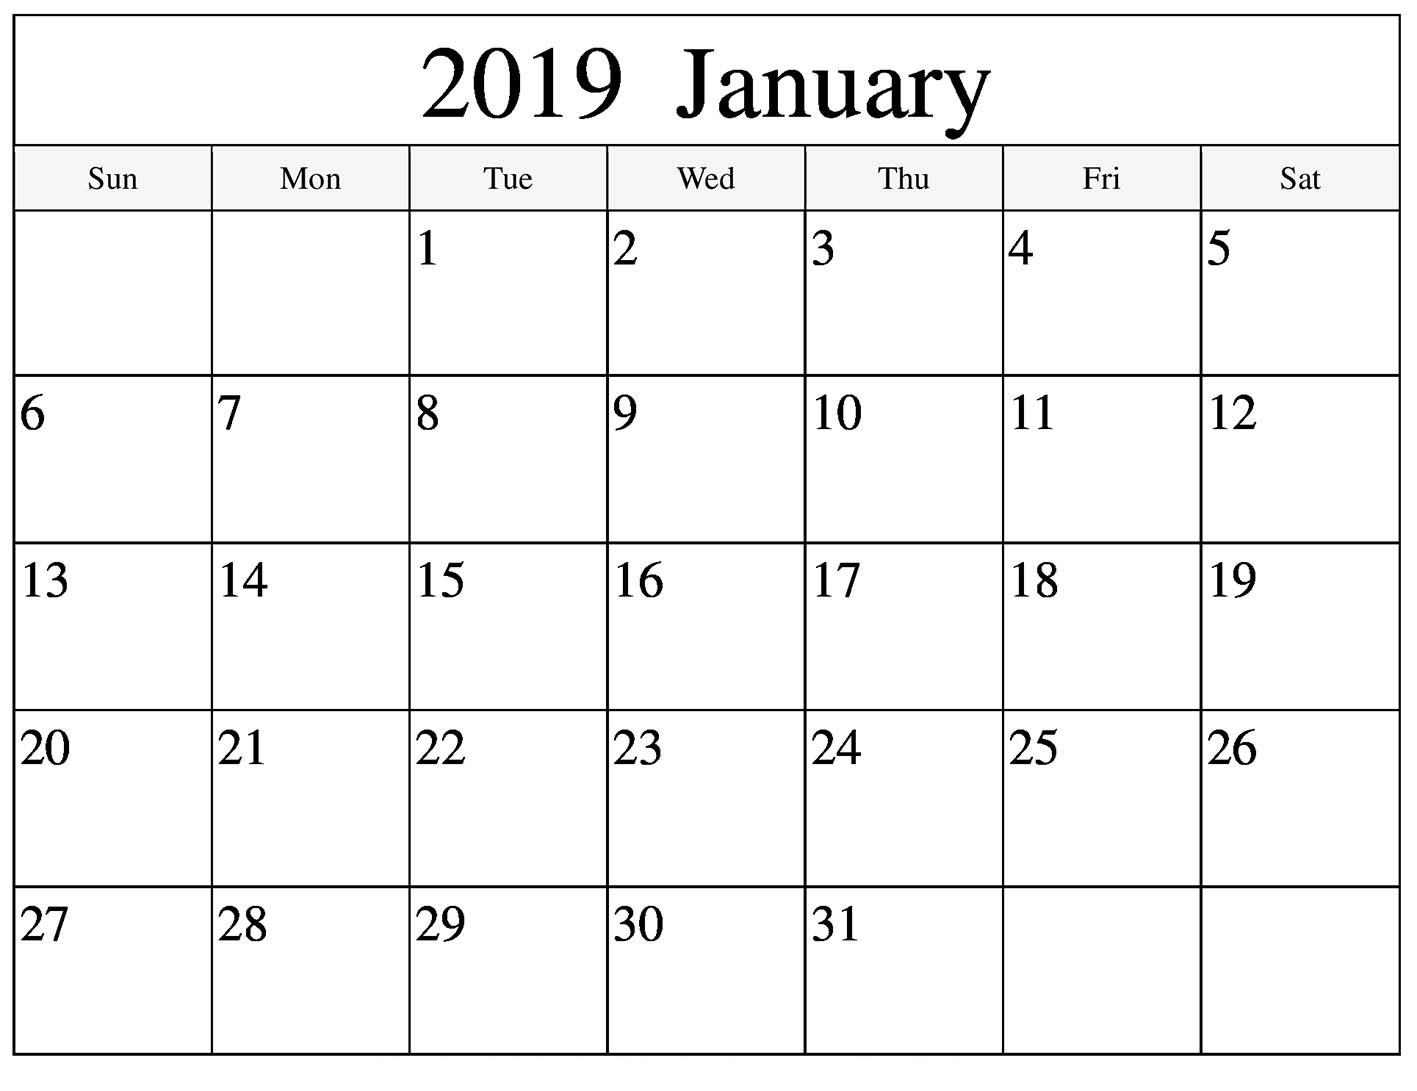 January 2019 Monthly Calendar For PDF